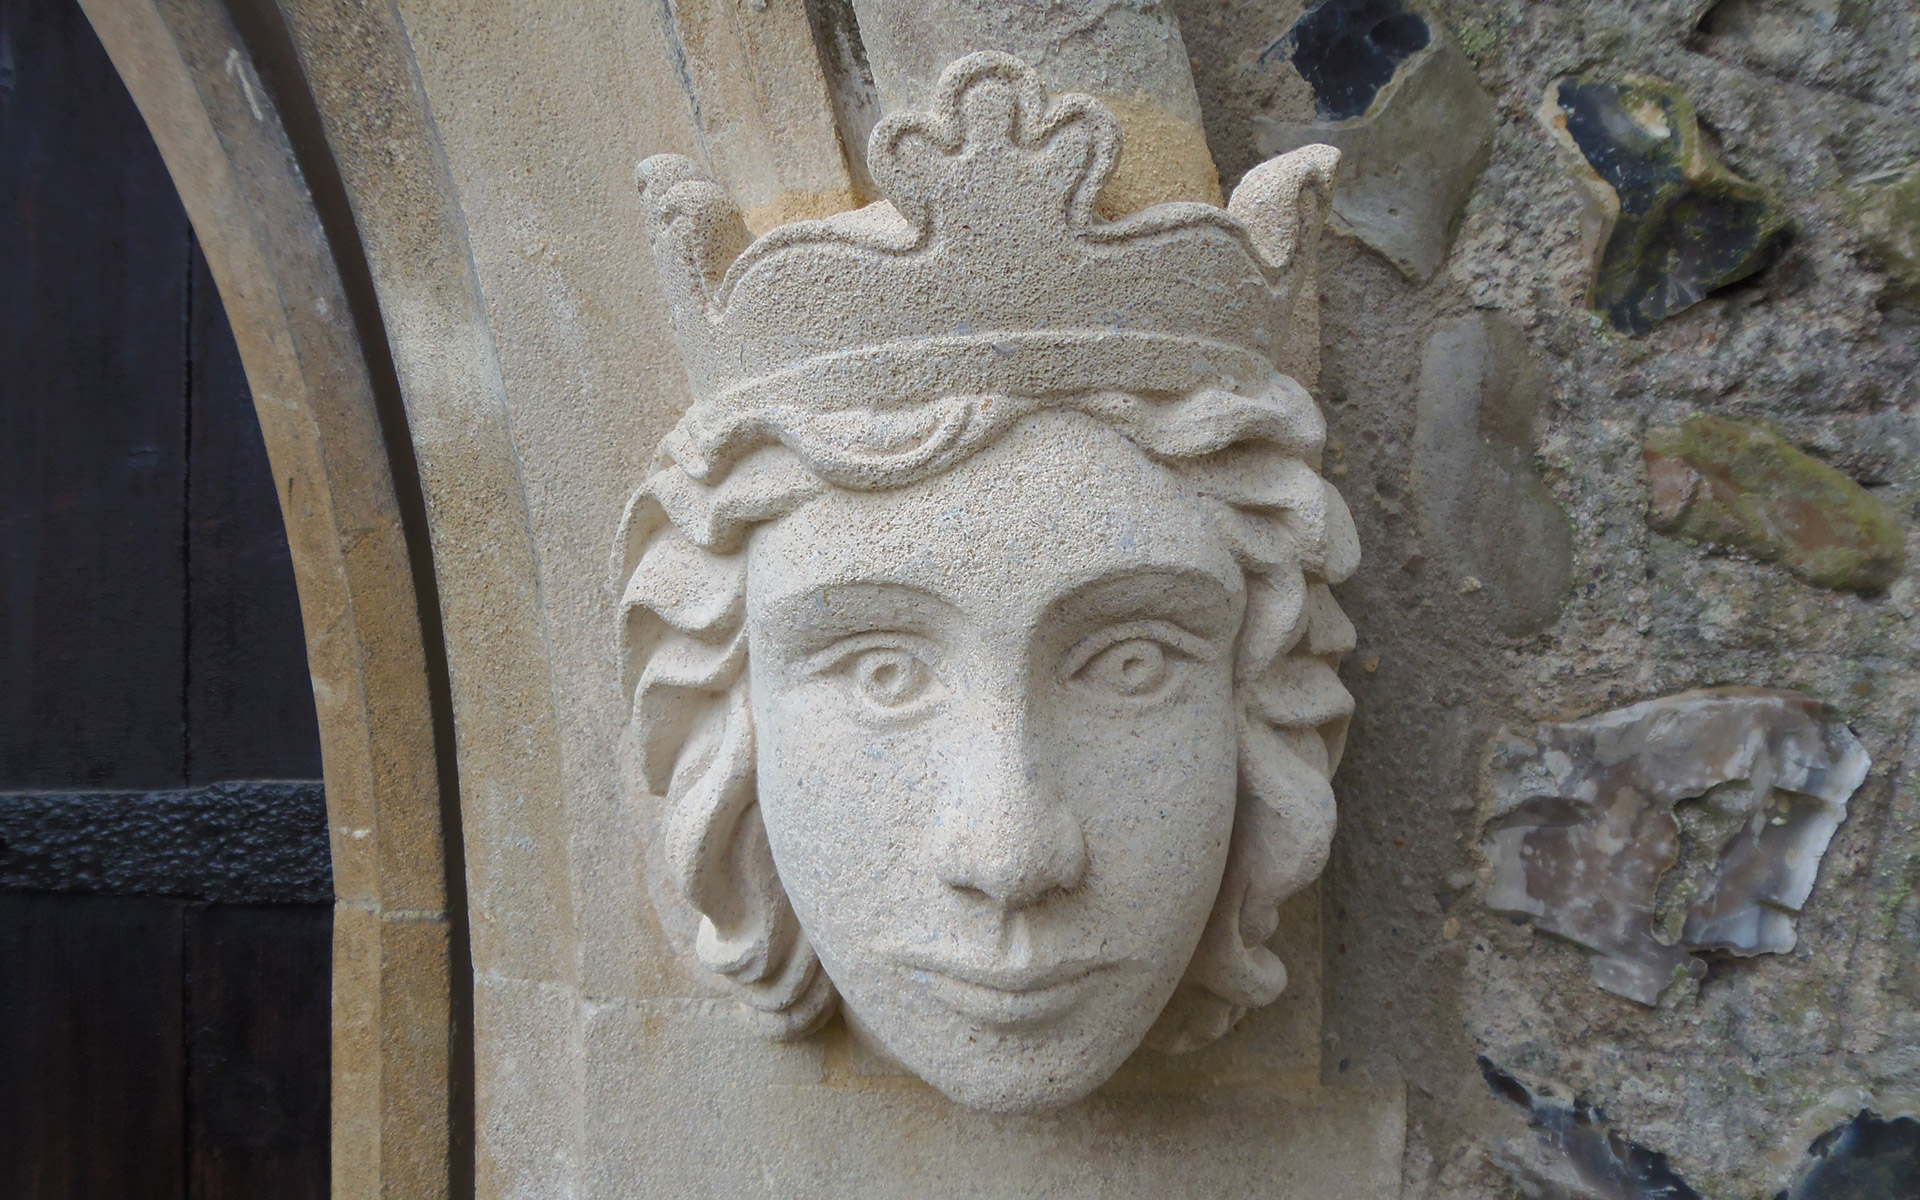 Willingale hand carved stone